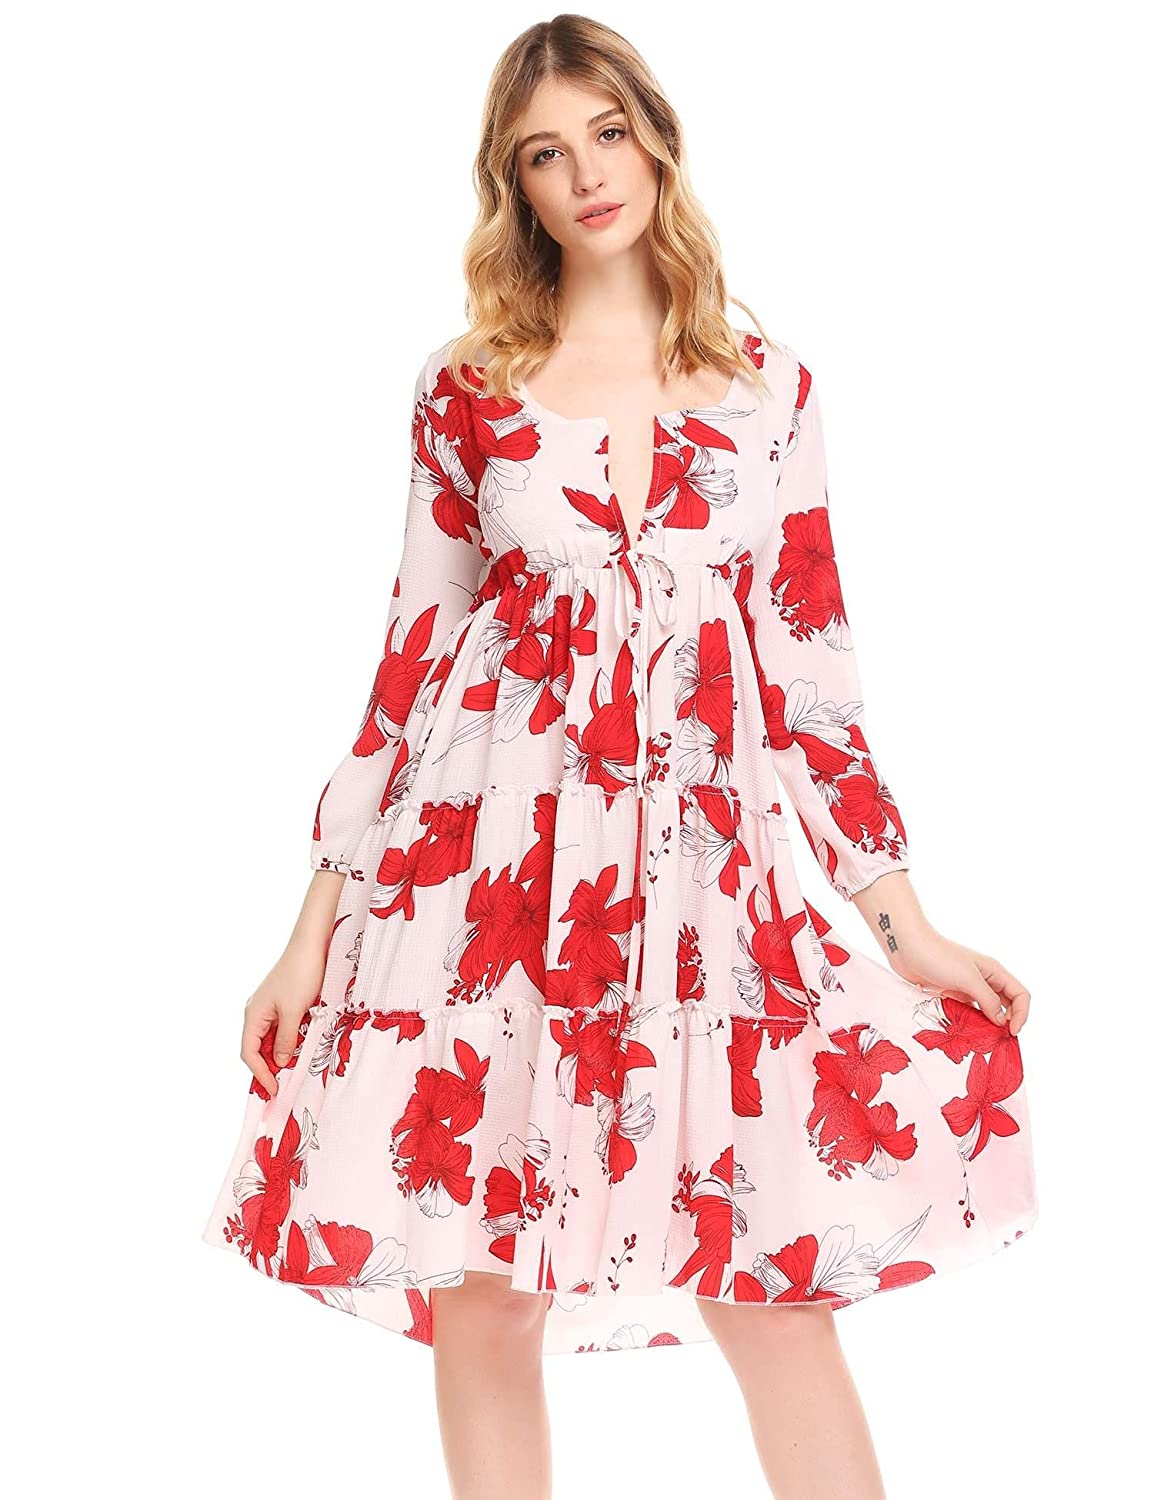 9fefc378c8c Ruffled surplice V neckline adds chic factor to the skater dress. 3 4  sleeve. Fully lined. Above knee length shows off your legs while still  being elegant.